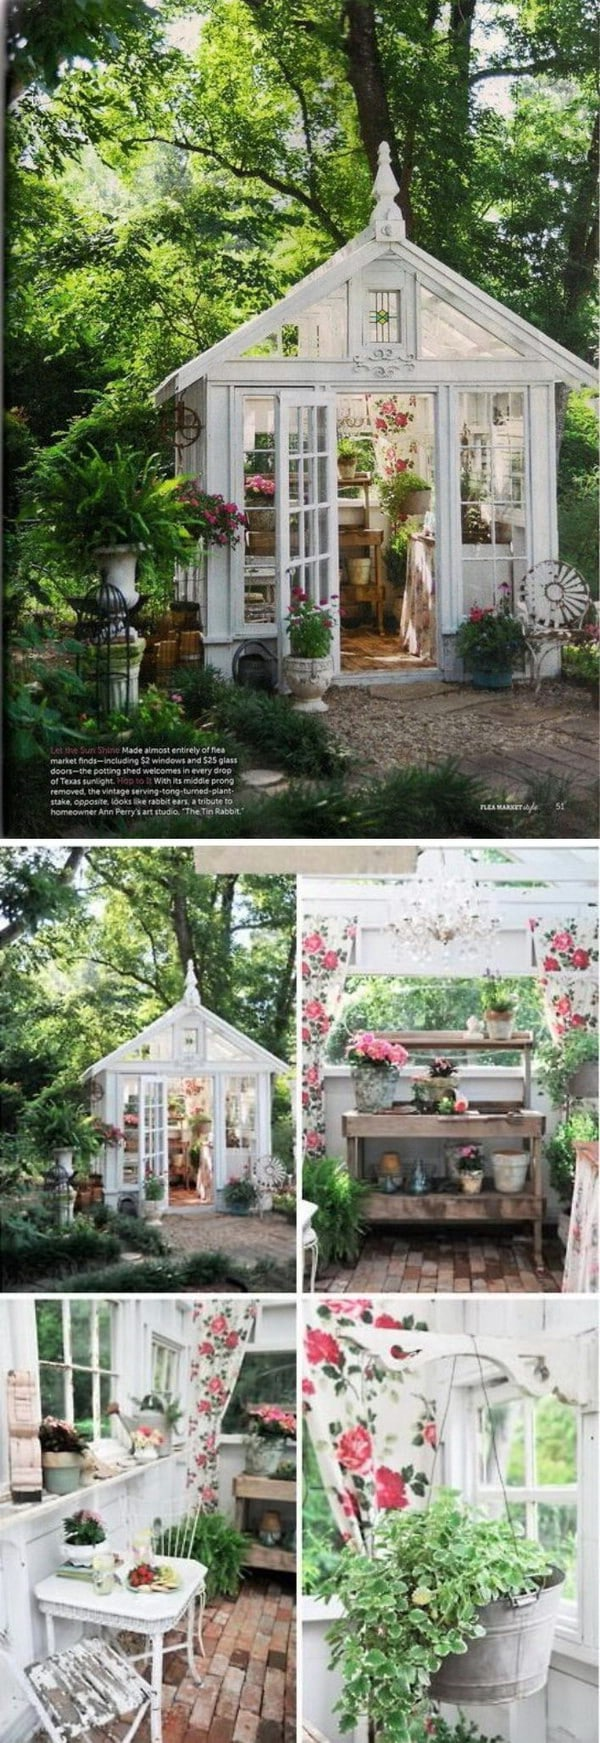 Posh Potting Shed - Top 80 Gorgeously Comfortable She Sheds and Backyard Tiny Houses